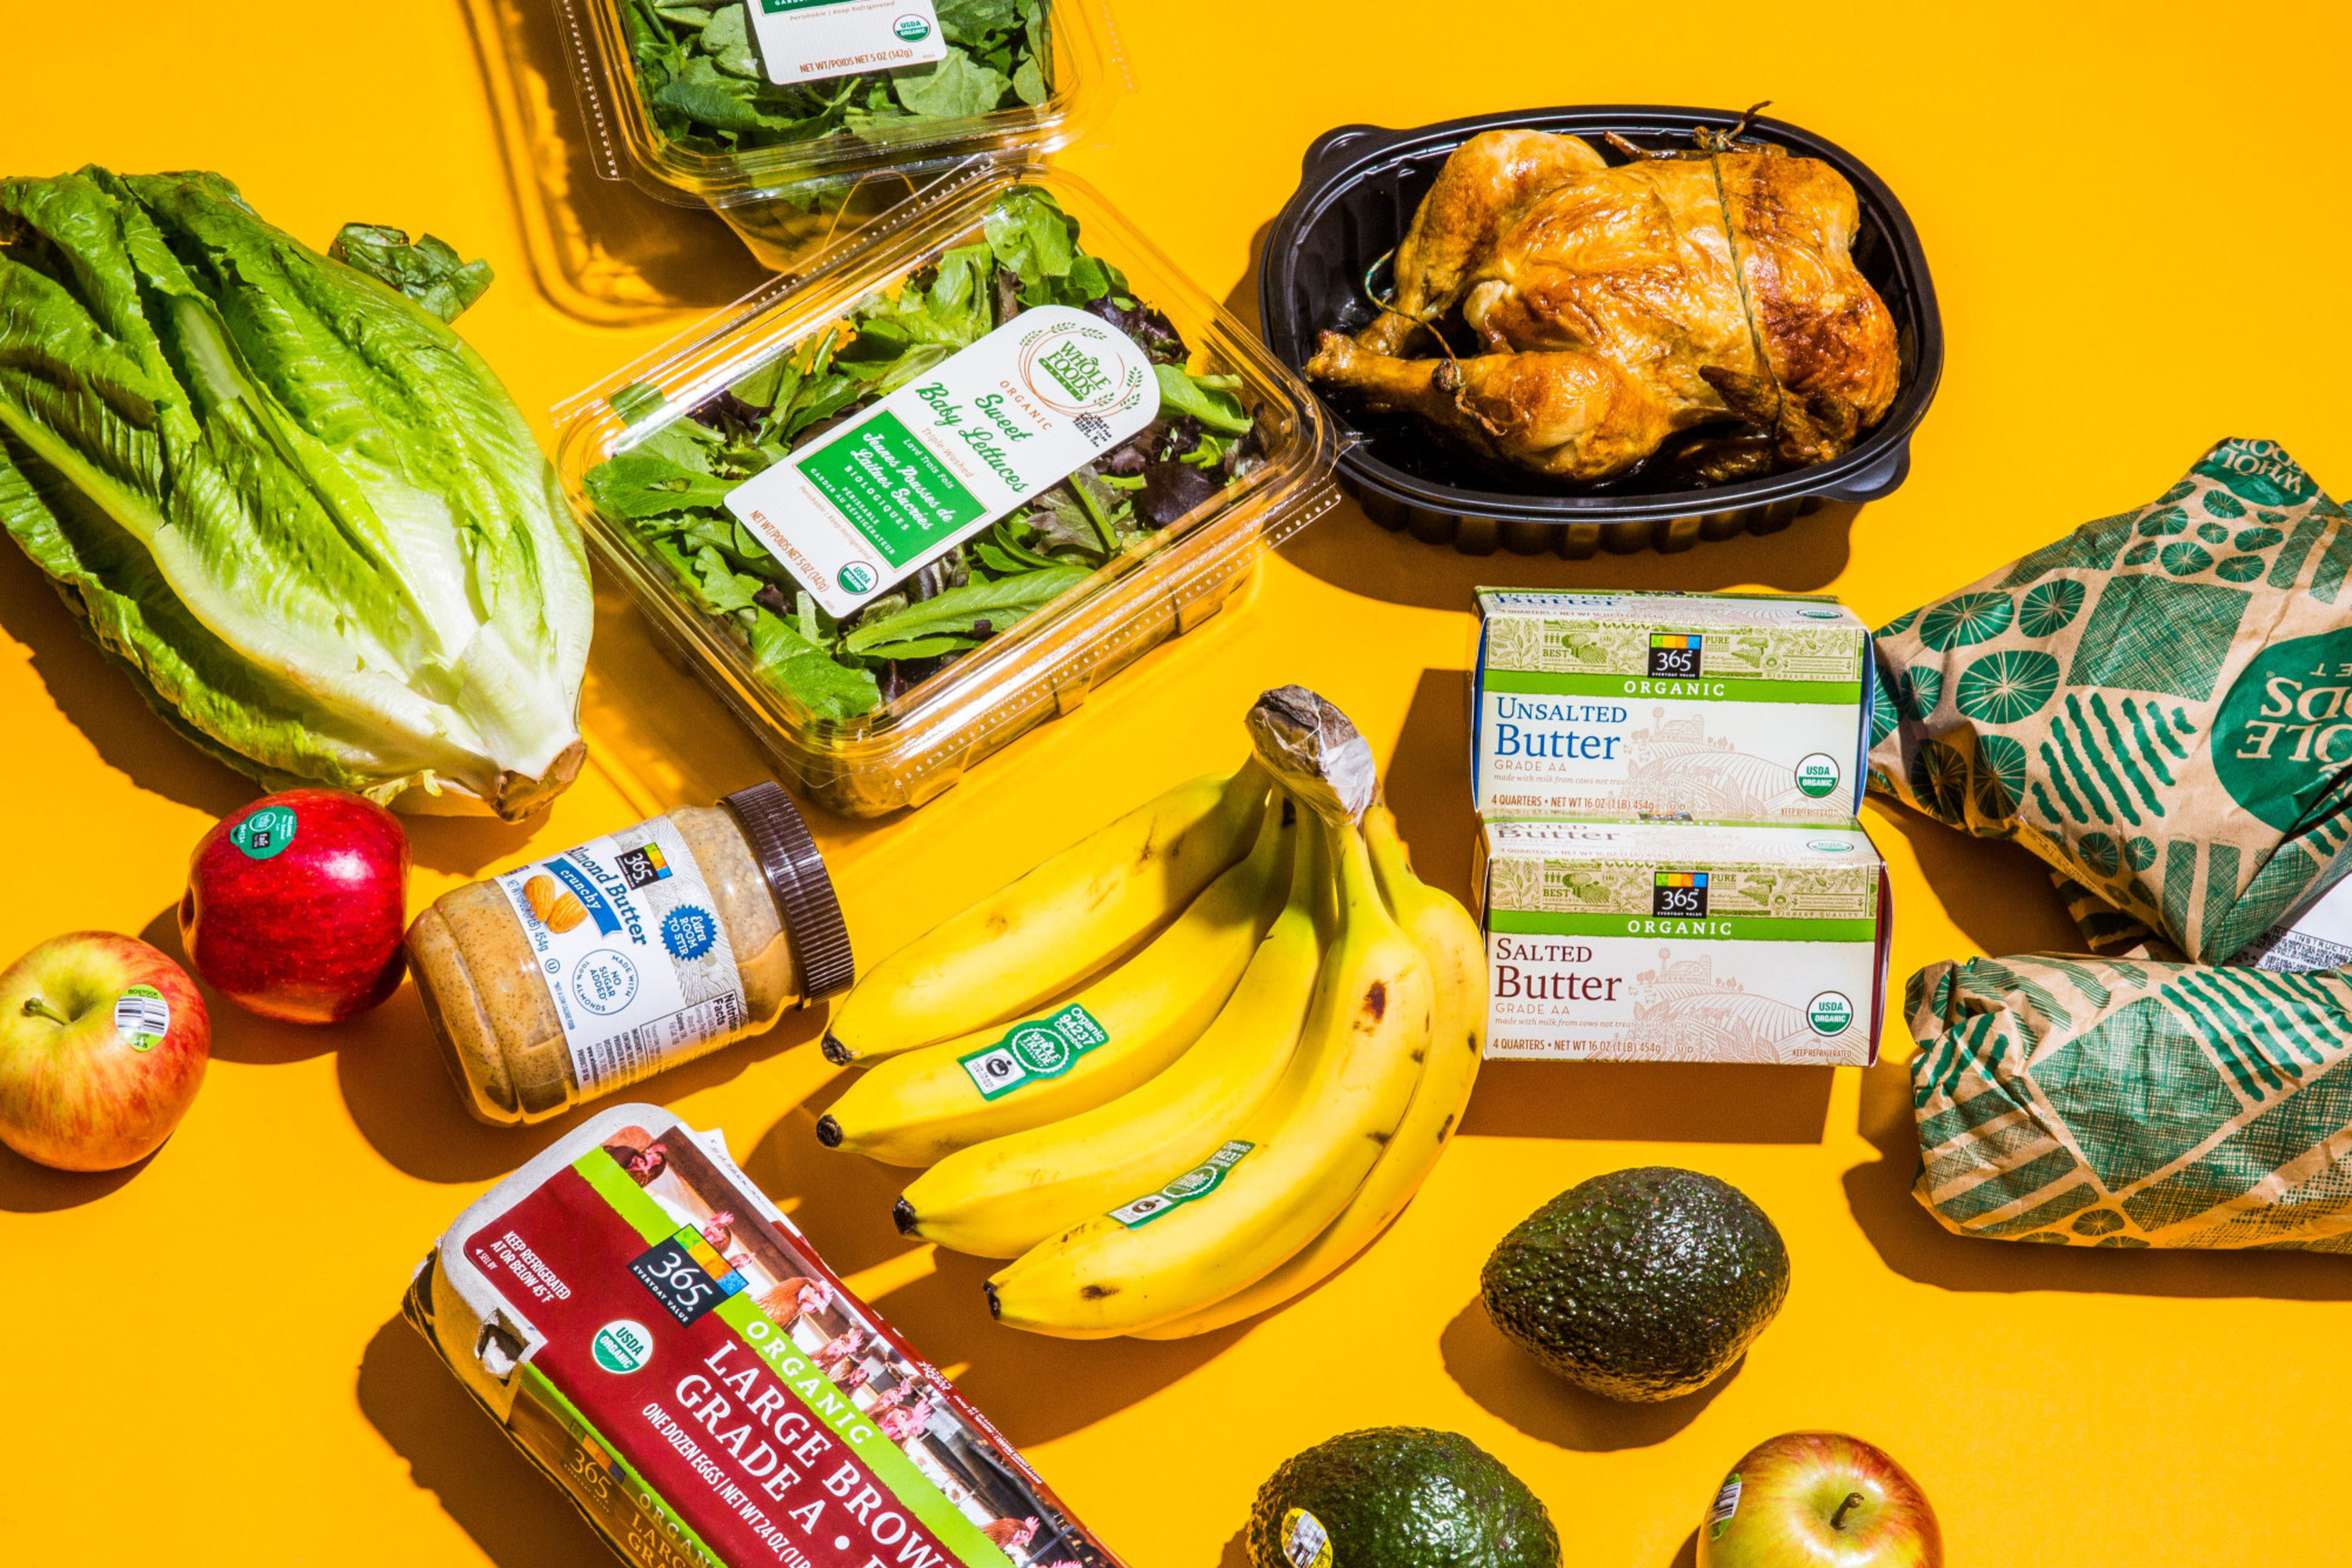 Amazon glitch stymies Whole Foods, fresh grocery deliveries